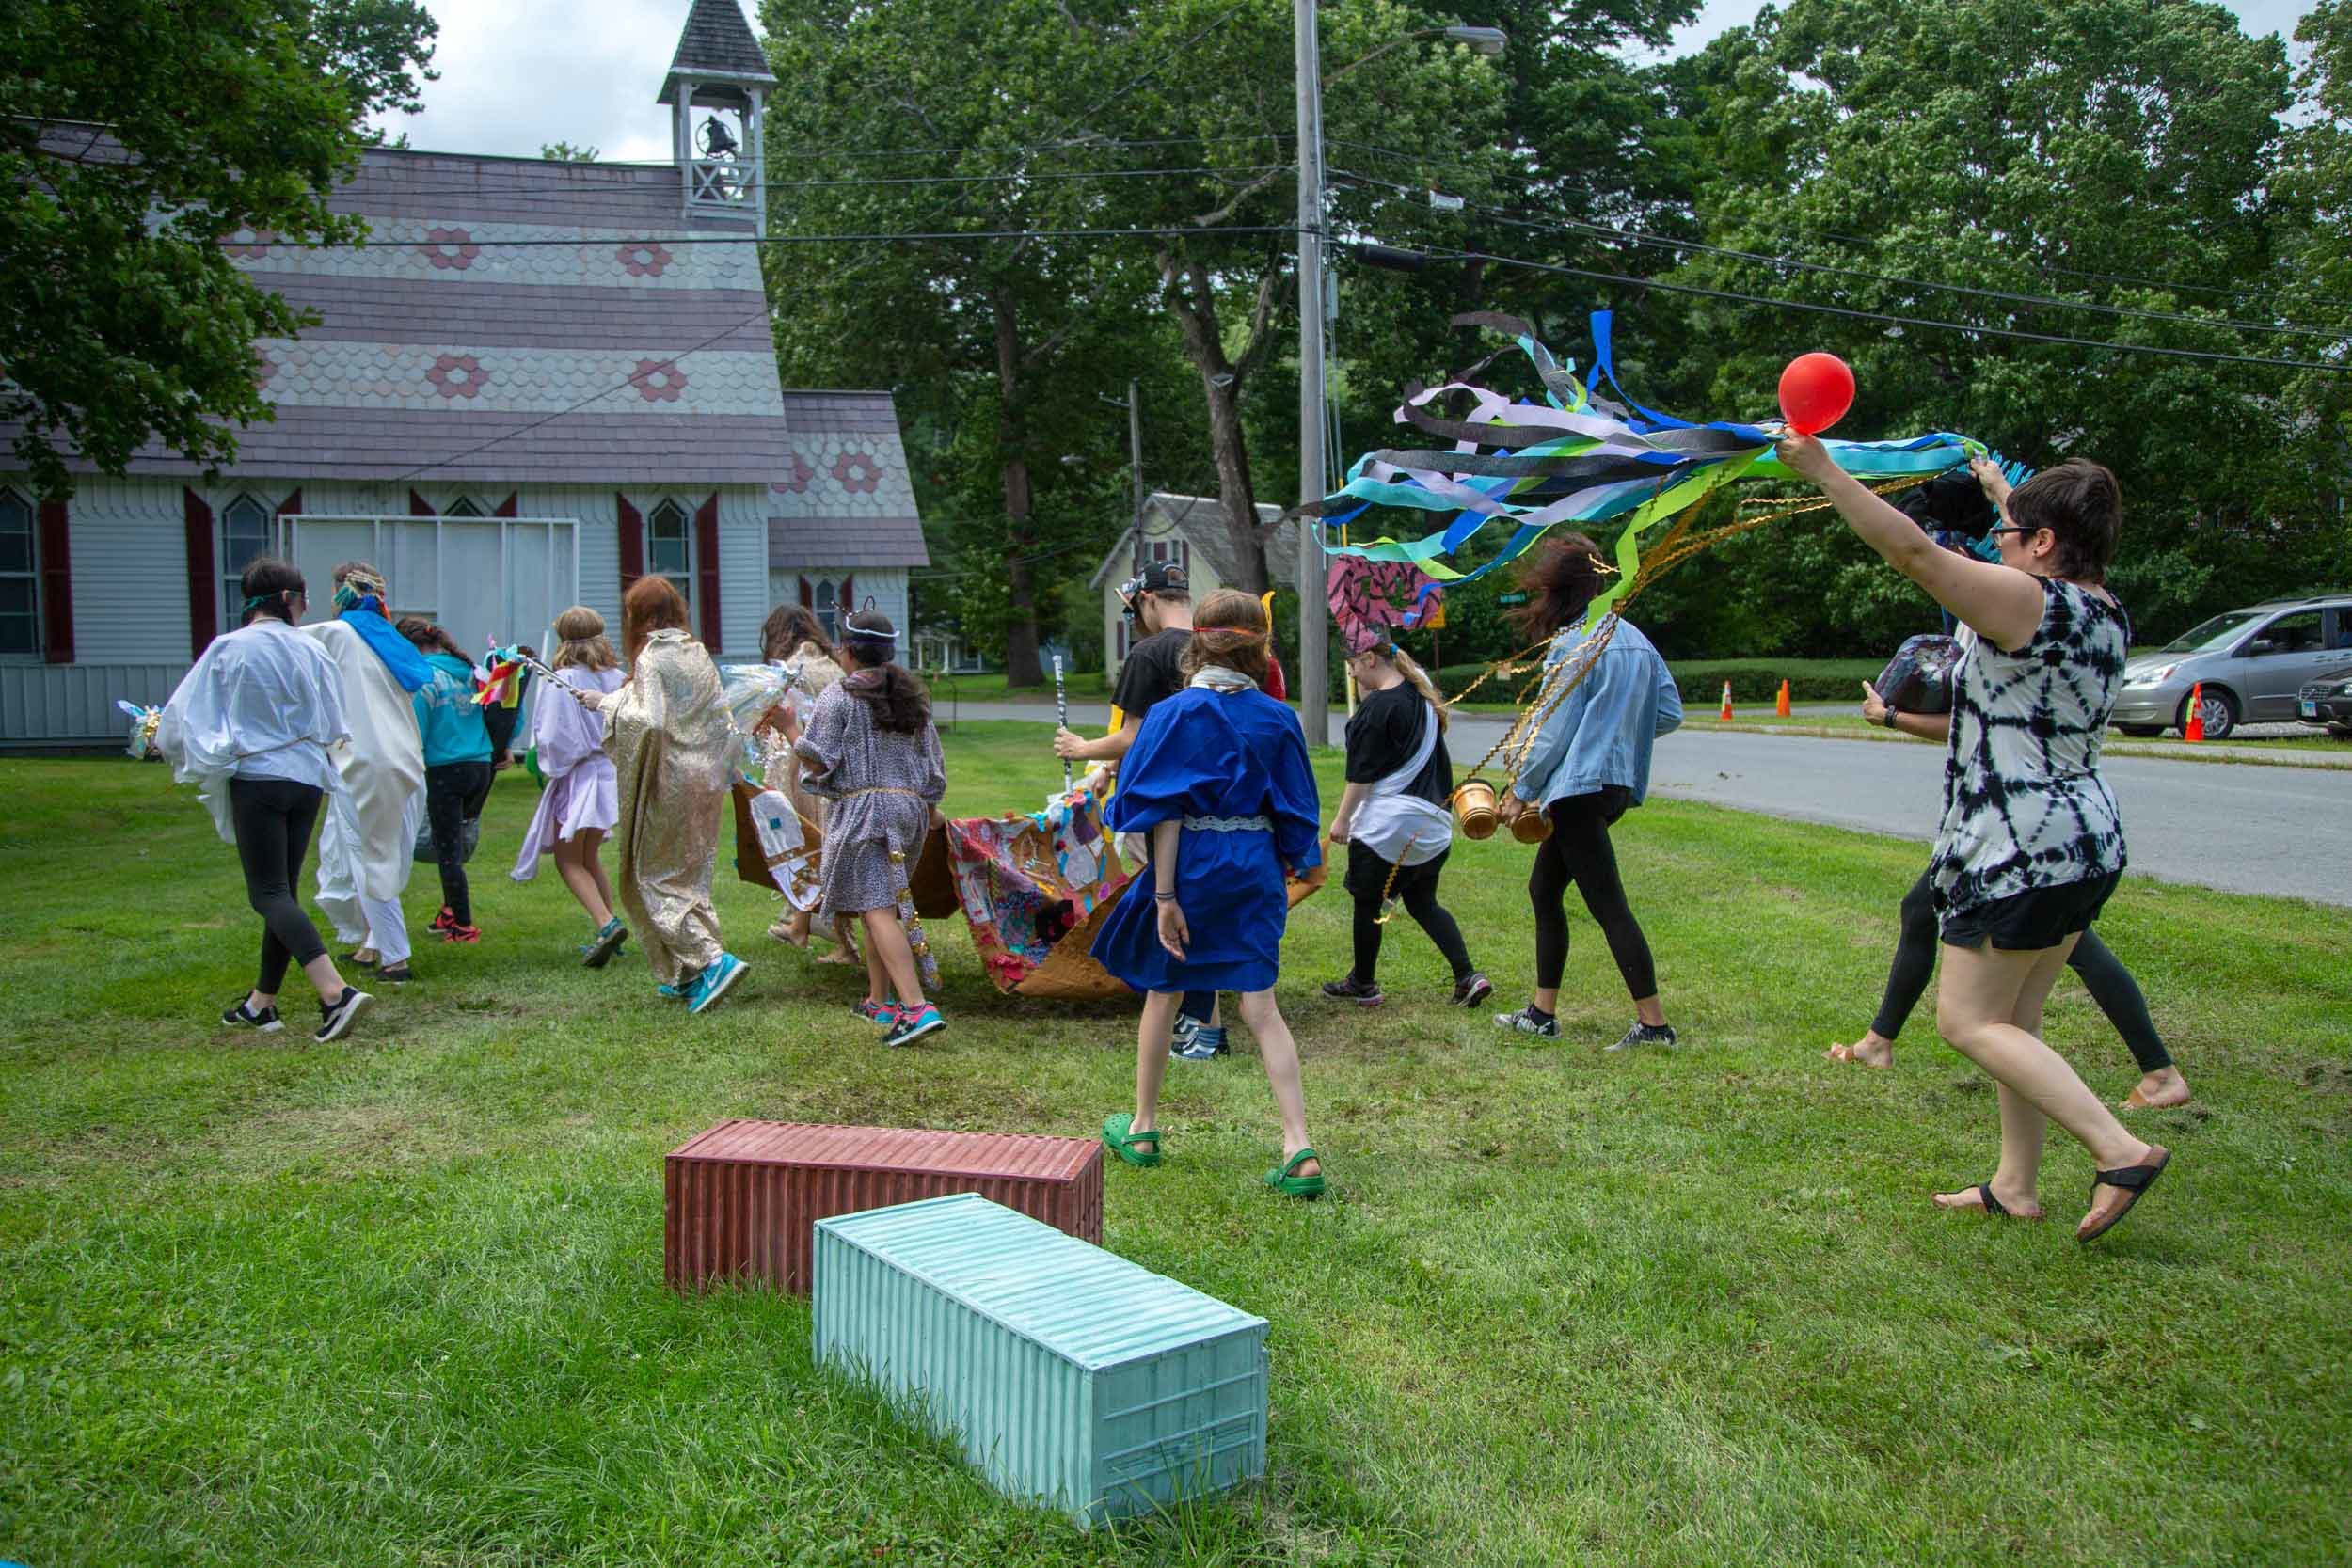 wassaic-project-education-camp-wassaic-2018-08-03-14-00-12.jpg